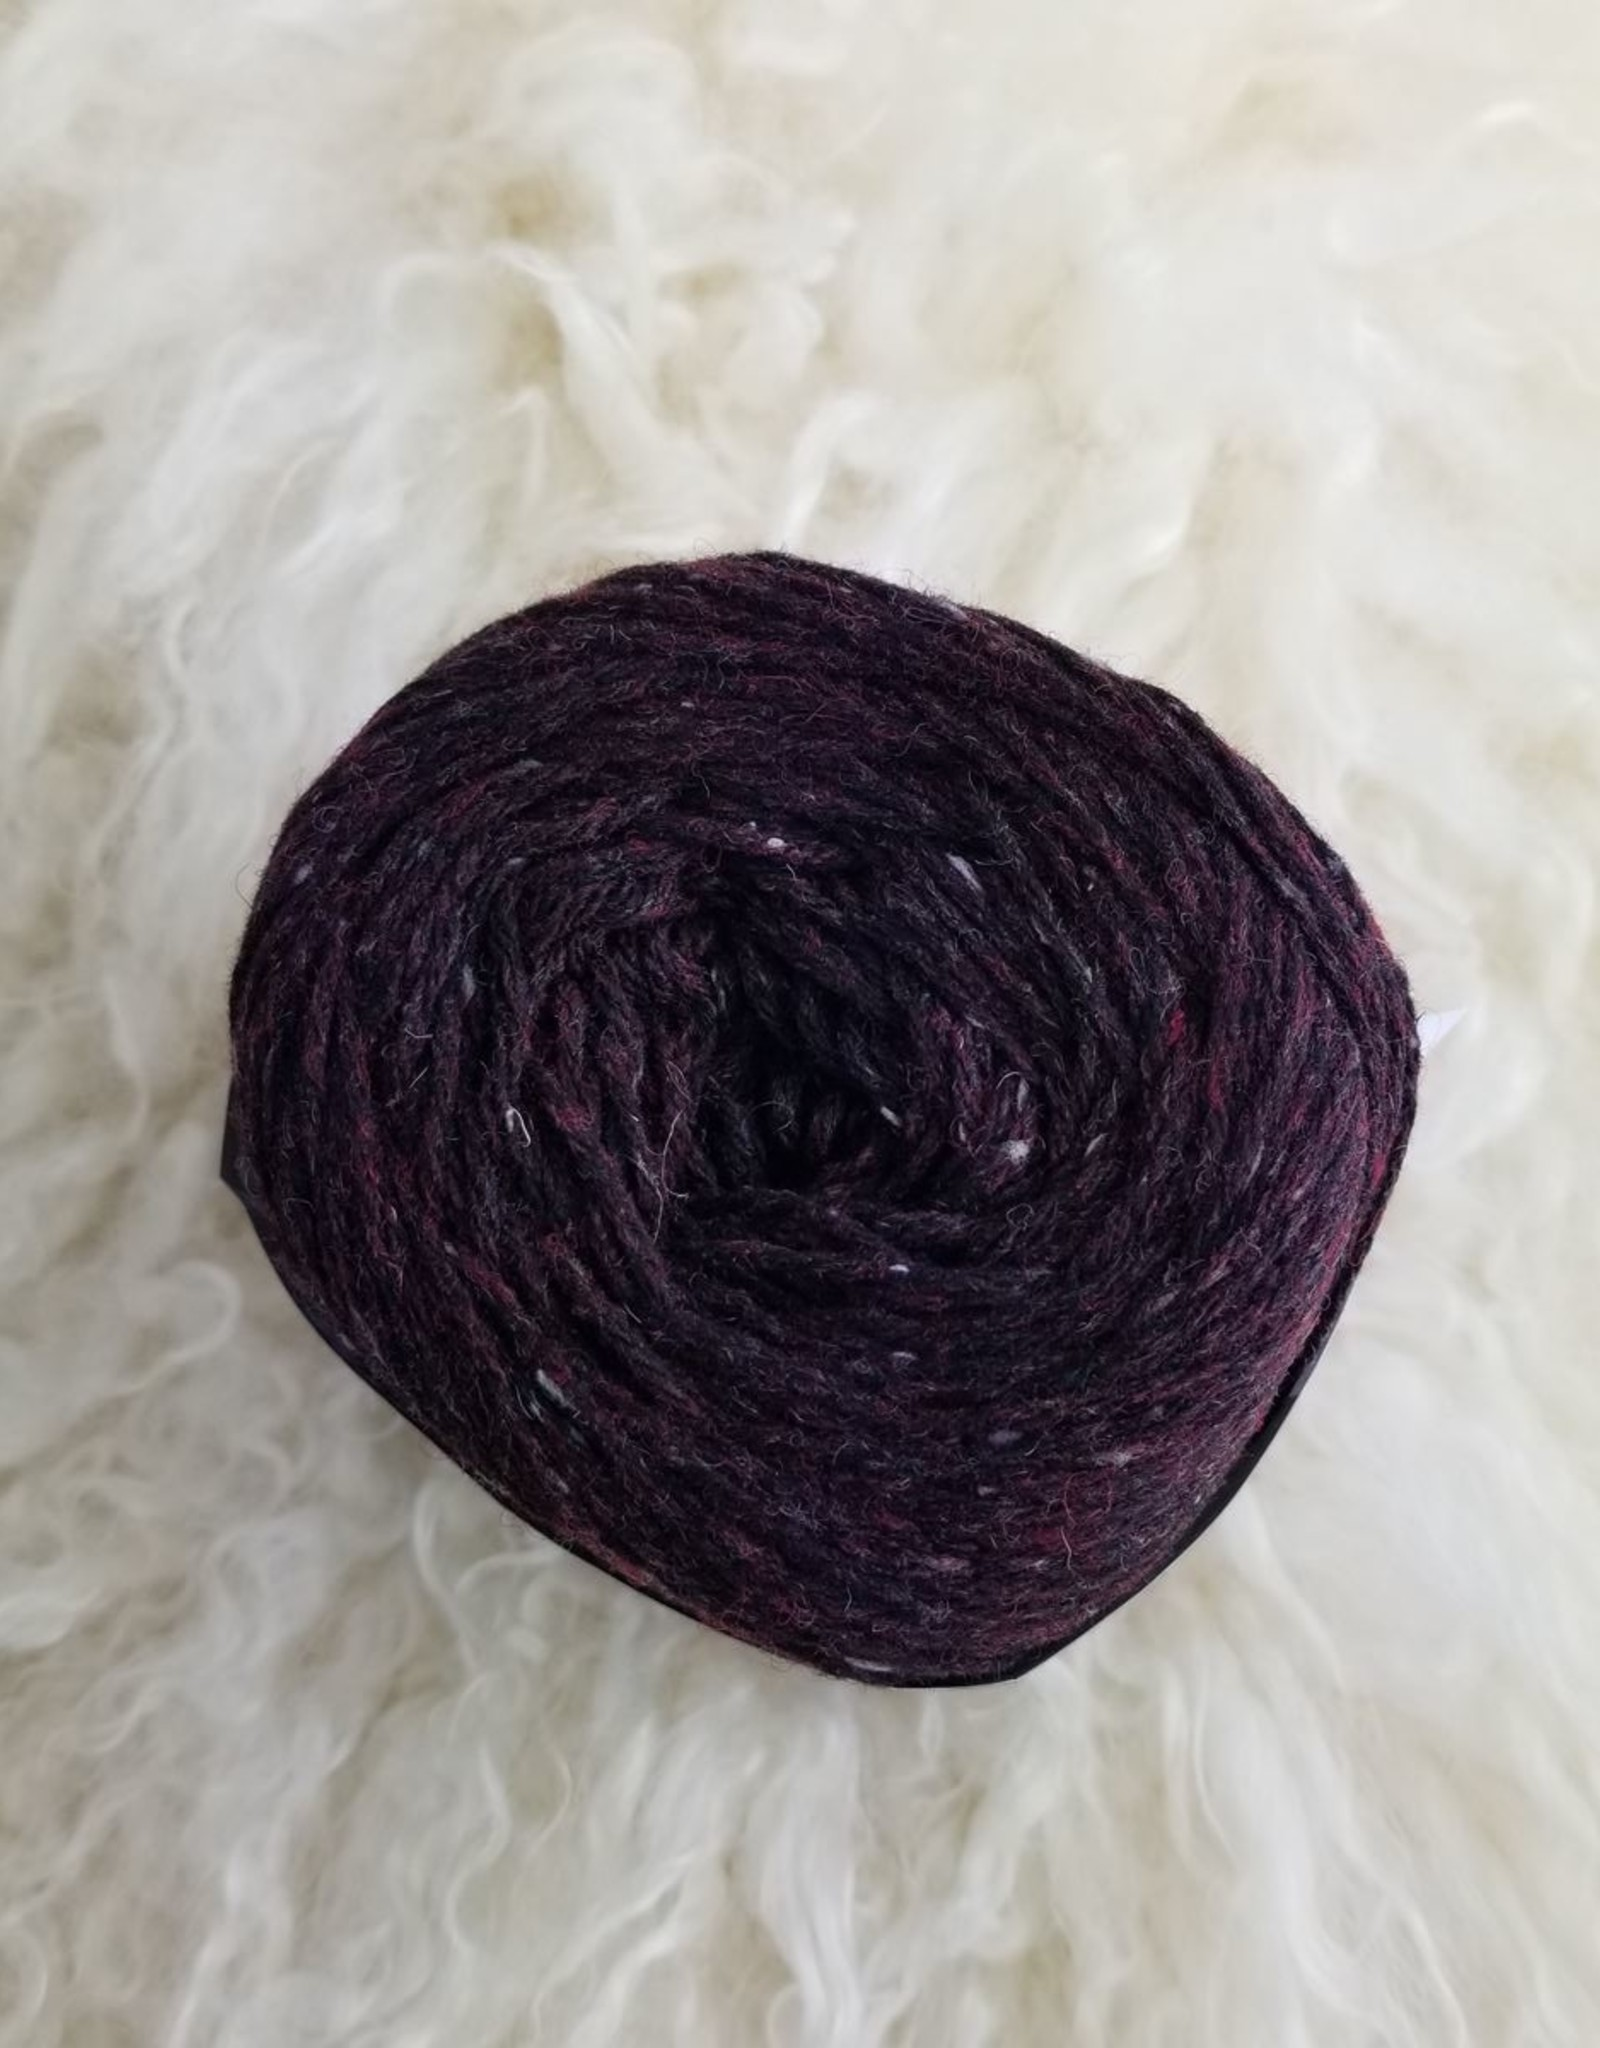 Queensland Recycled Tweed 100g 05 liquorice